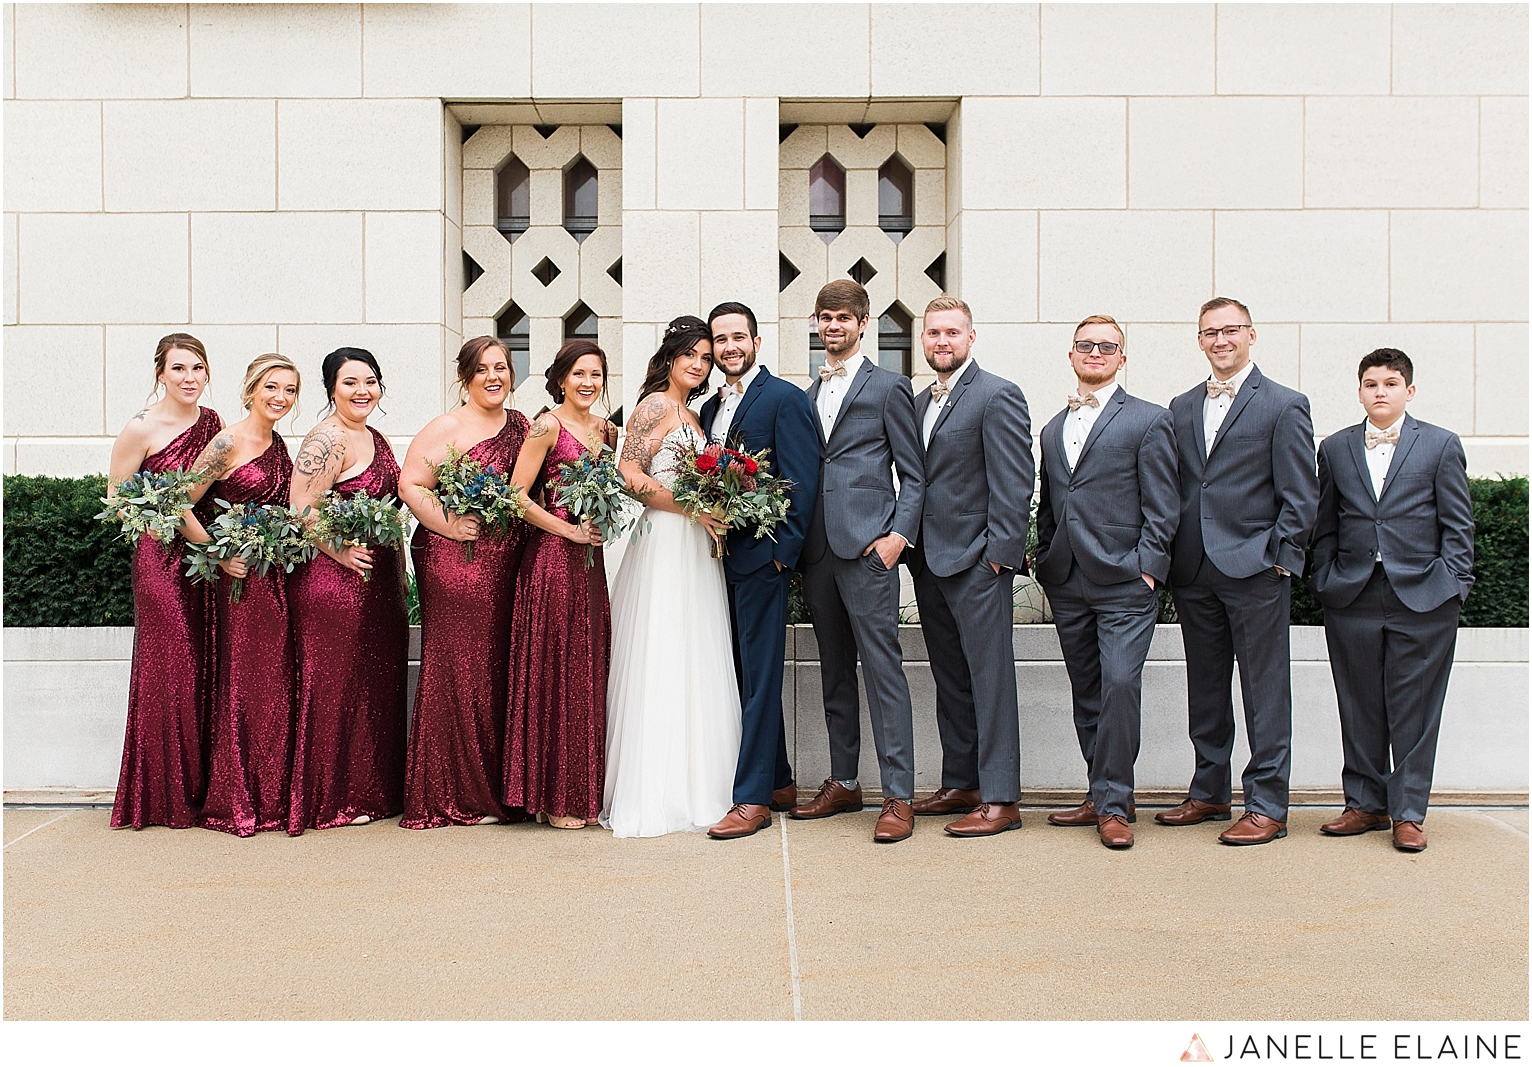 seattle wedding photographers-durham museum-wedding-omaha ne-destination-wedding-photographers-janelle elaine-midwest bride-5-8.jpg